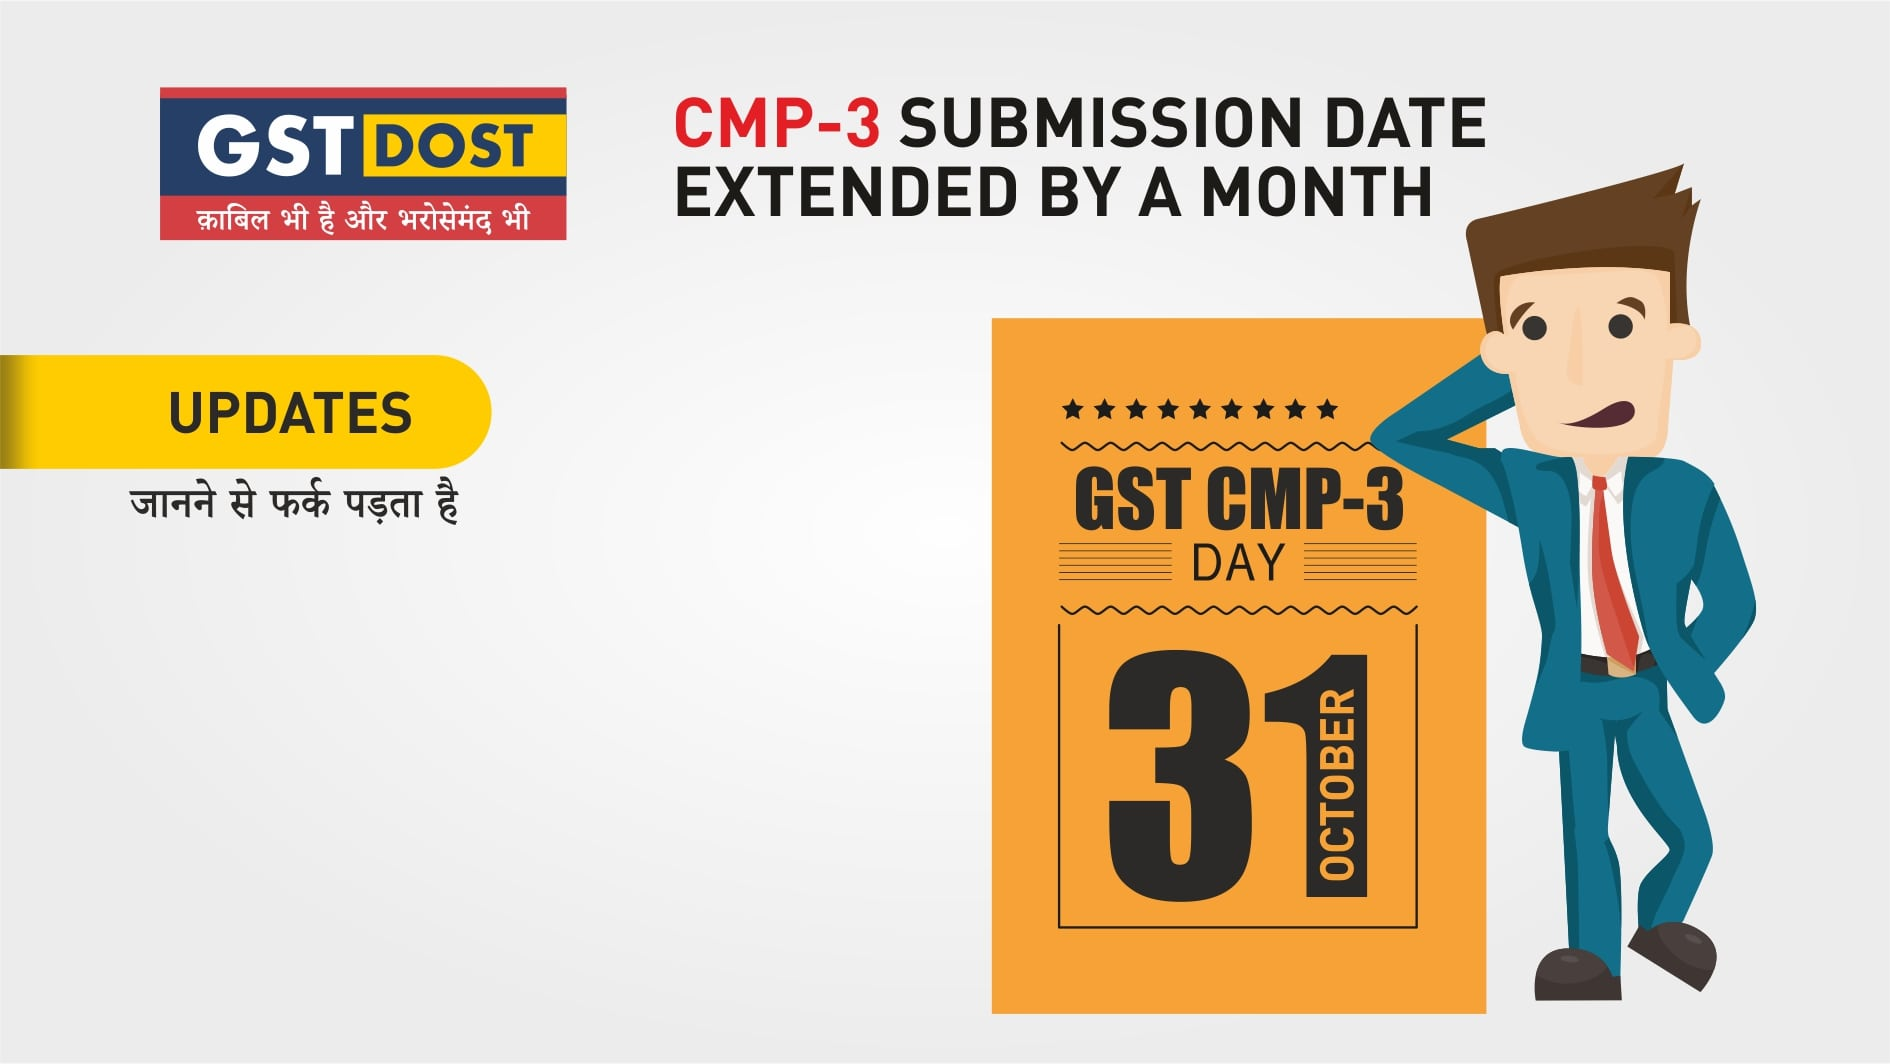 CMP-3 Submission Date Extended by a Month